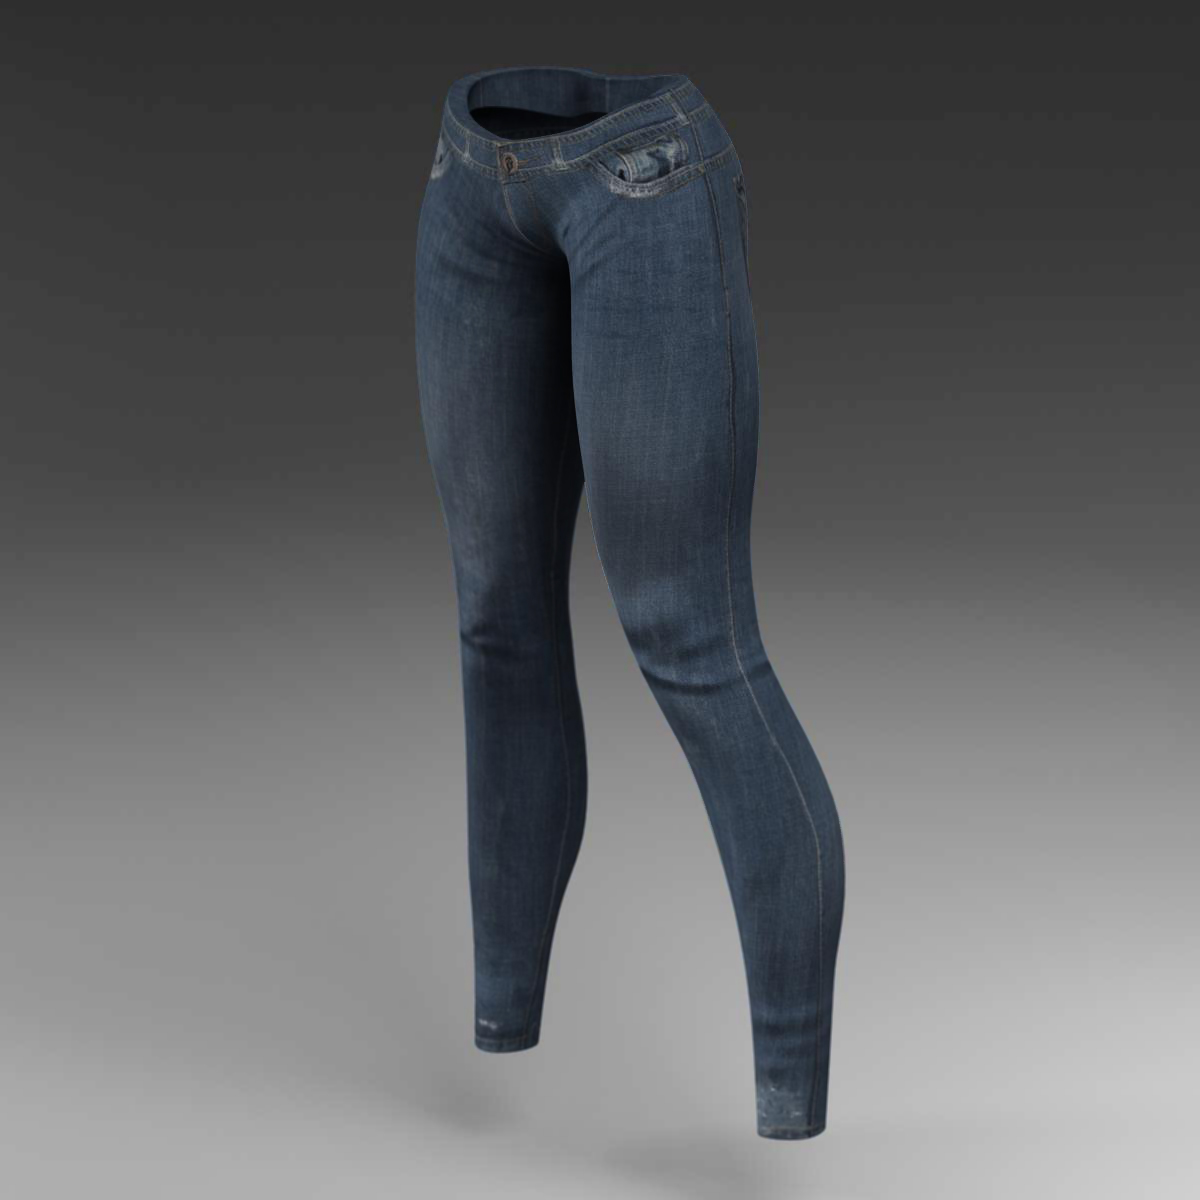 female jeans 3d model 3ds max fbx c4d ma mb obj 160401